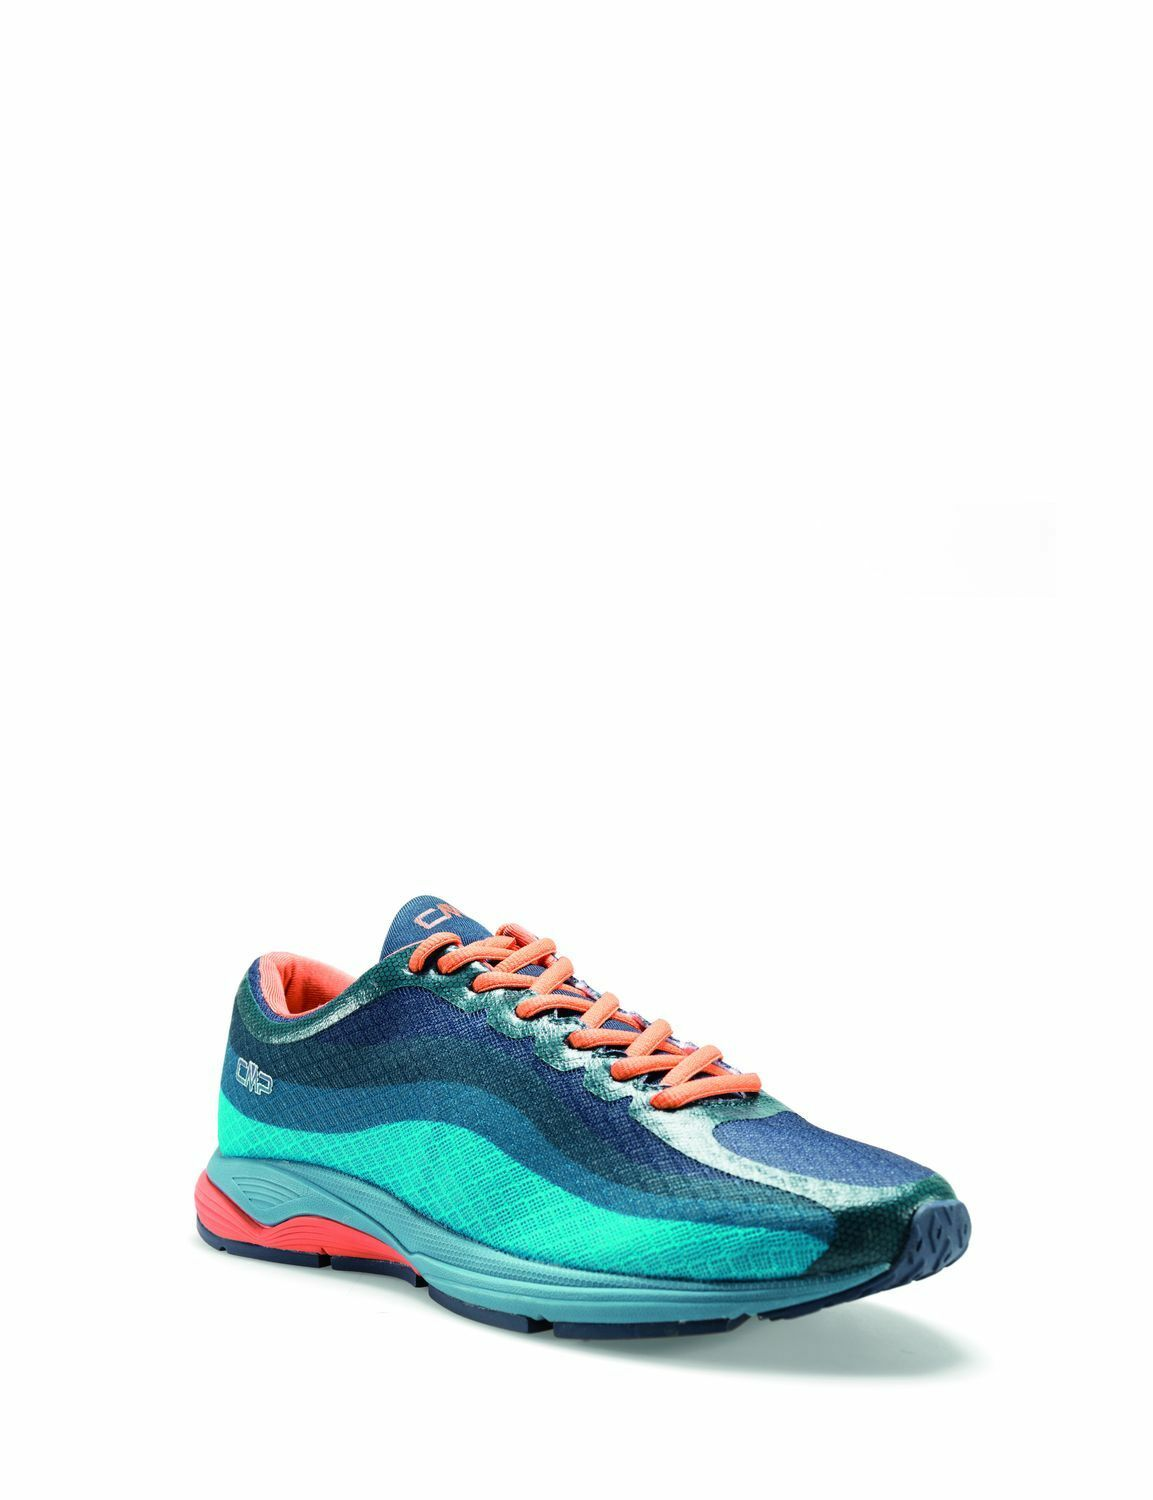 CMP Trainers Running  shoes Fitness shoes bluee Pulsar Mesh Breathable  100% authentic